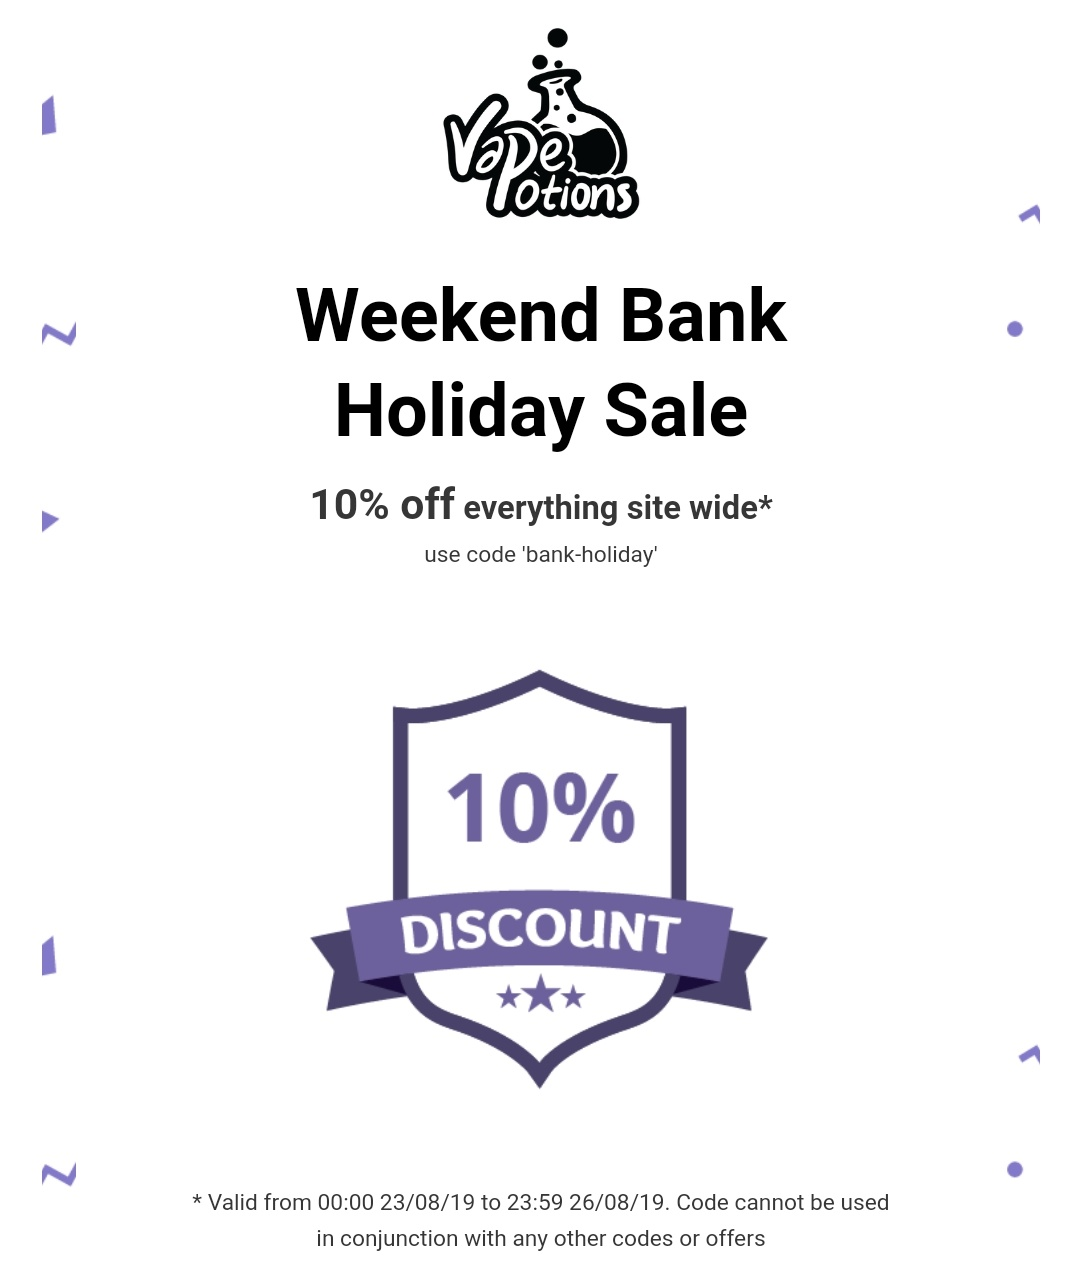 10% off everything site wide at Vape Potions